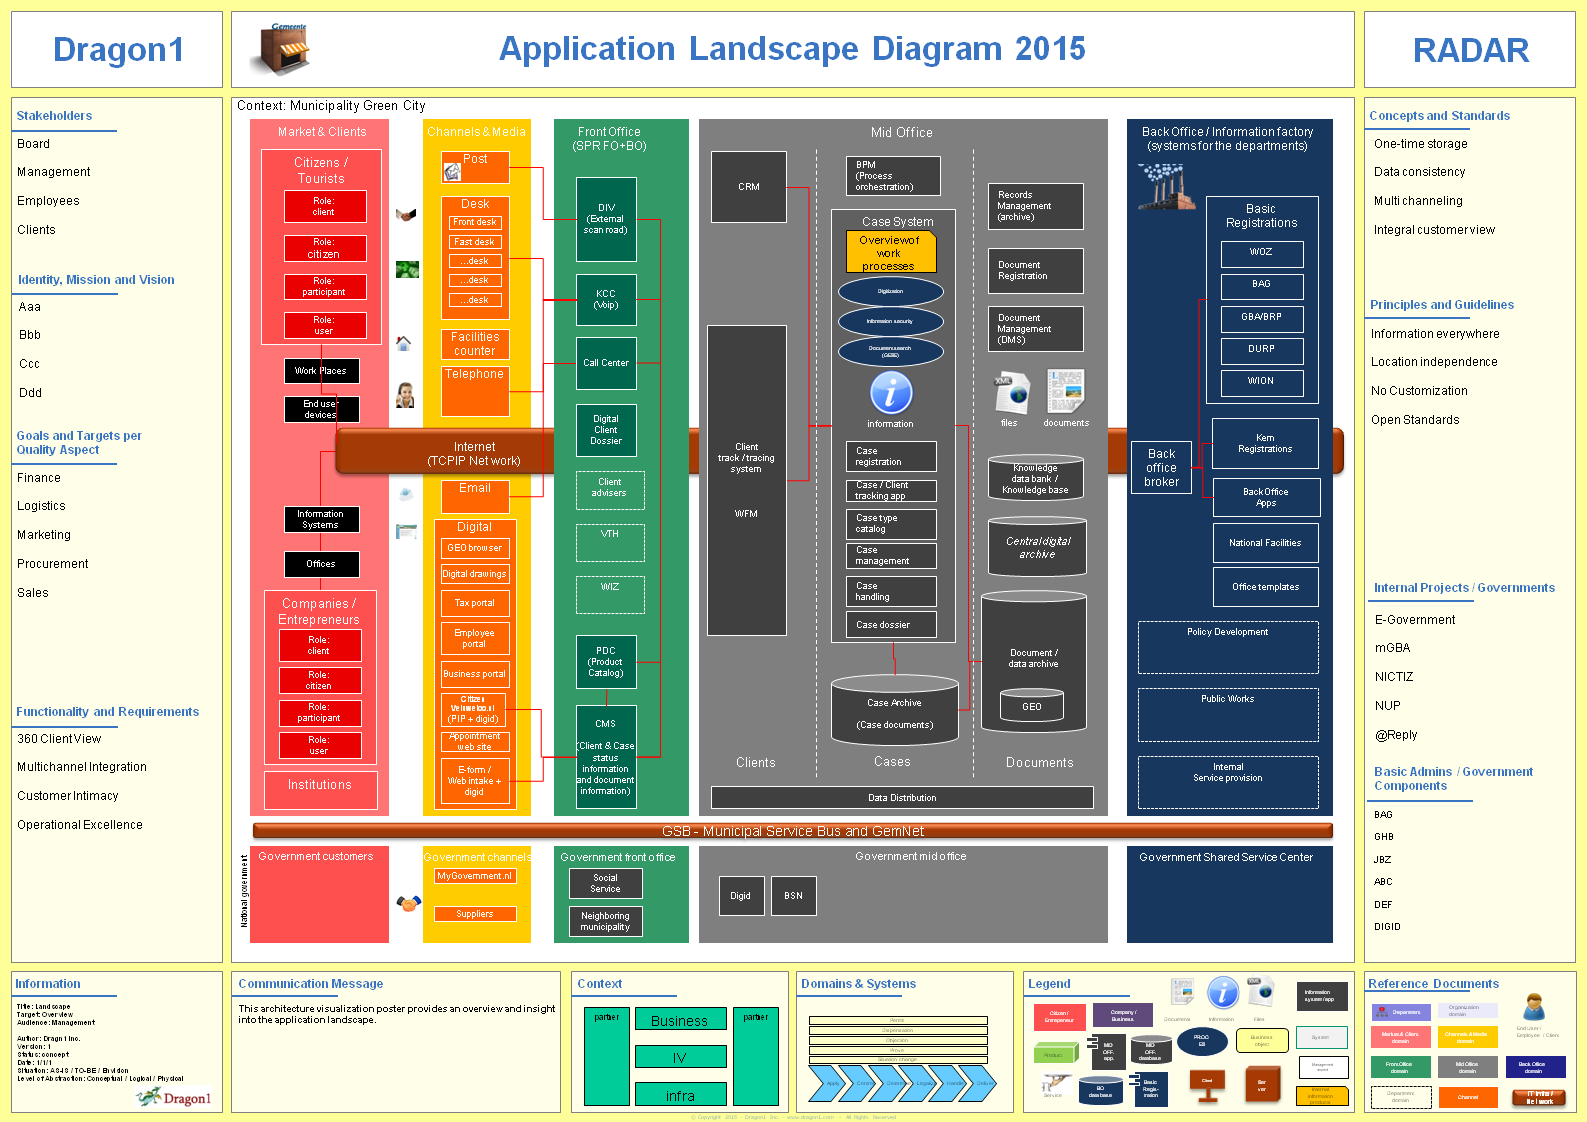 Dragon1 Application Landscape Diagram